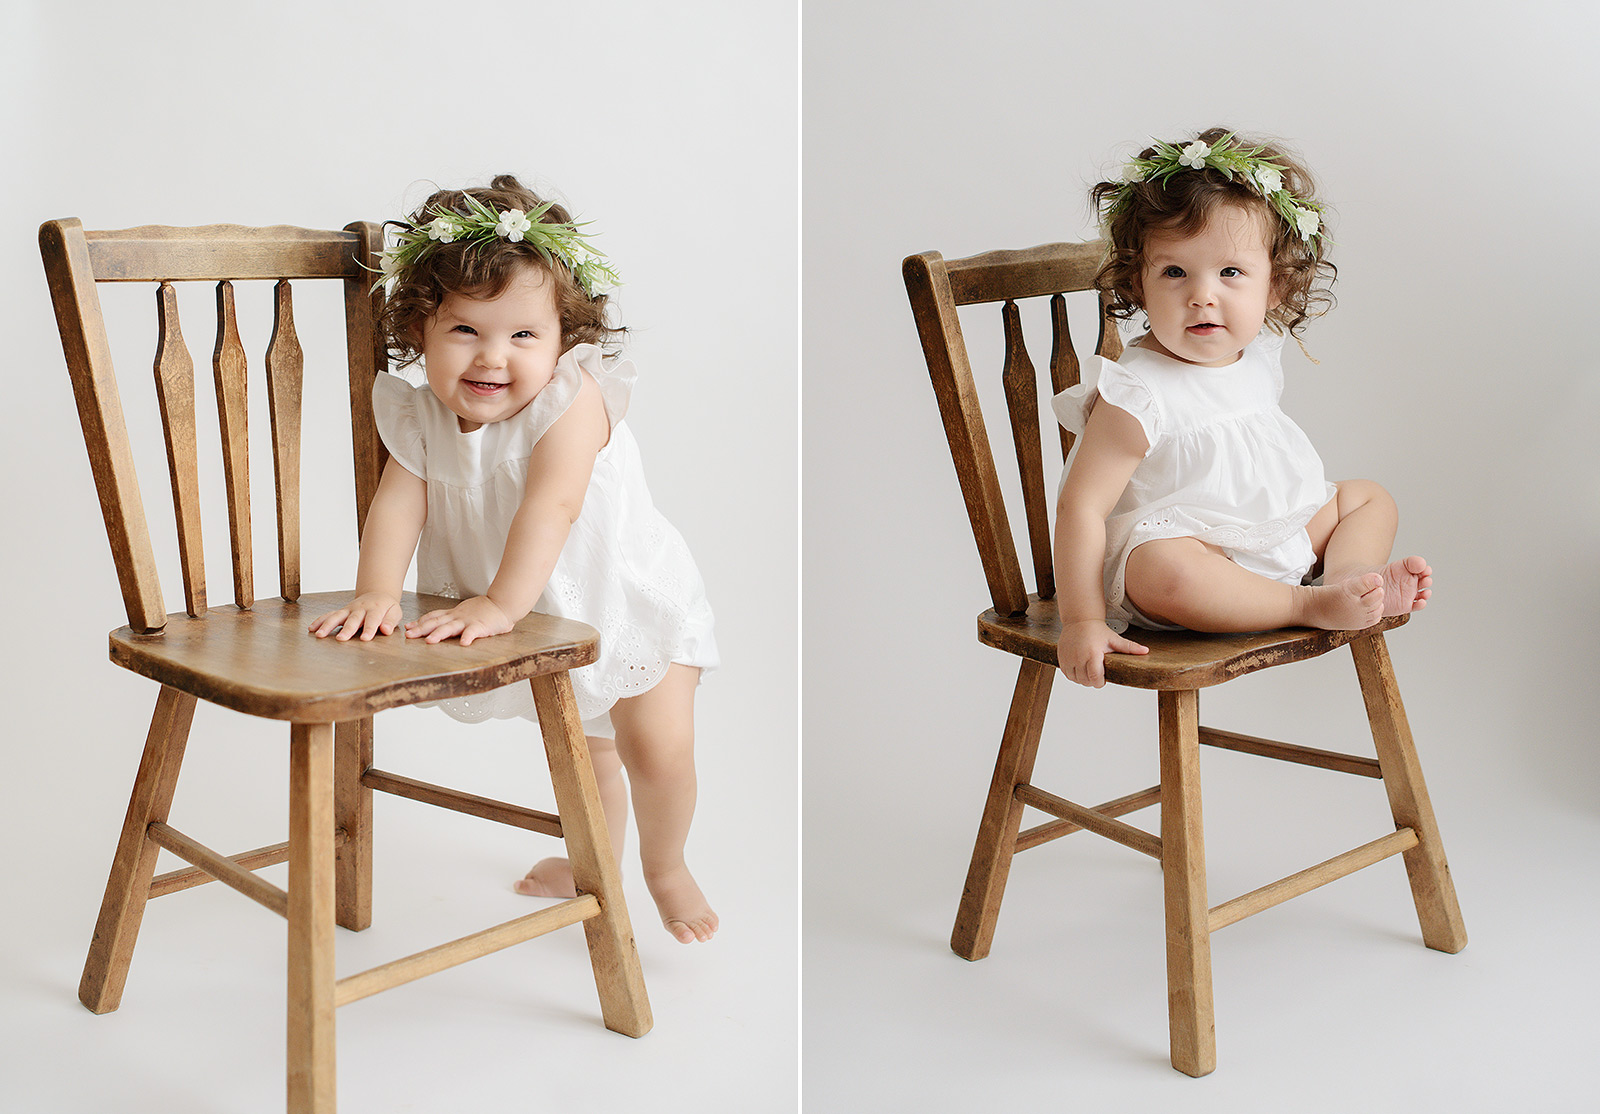 Baby Girl with Flower Crown Sitting and Standing on Wooden Chair